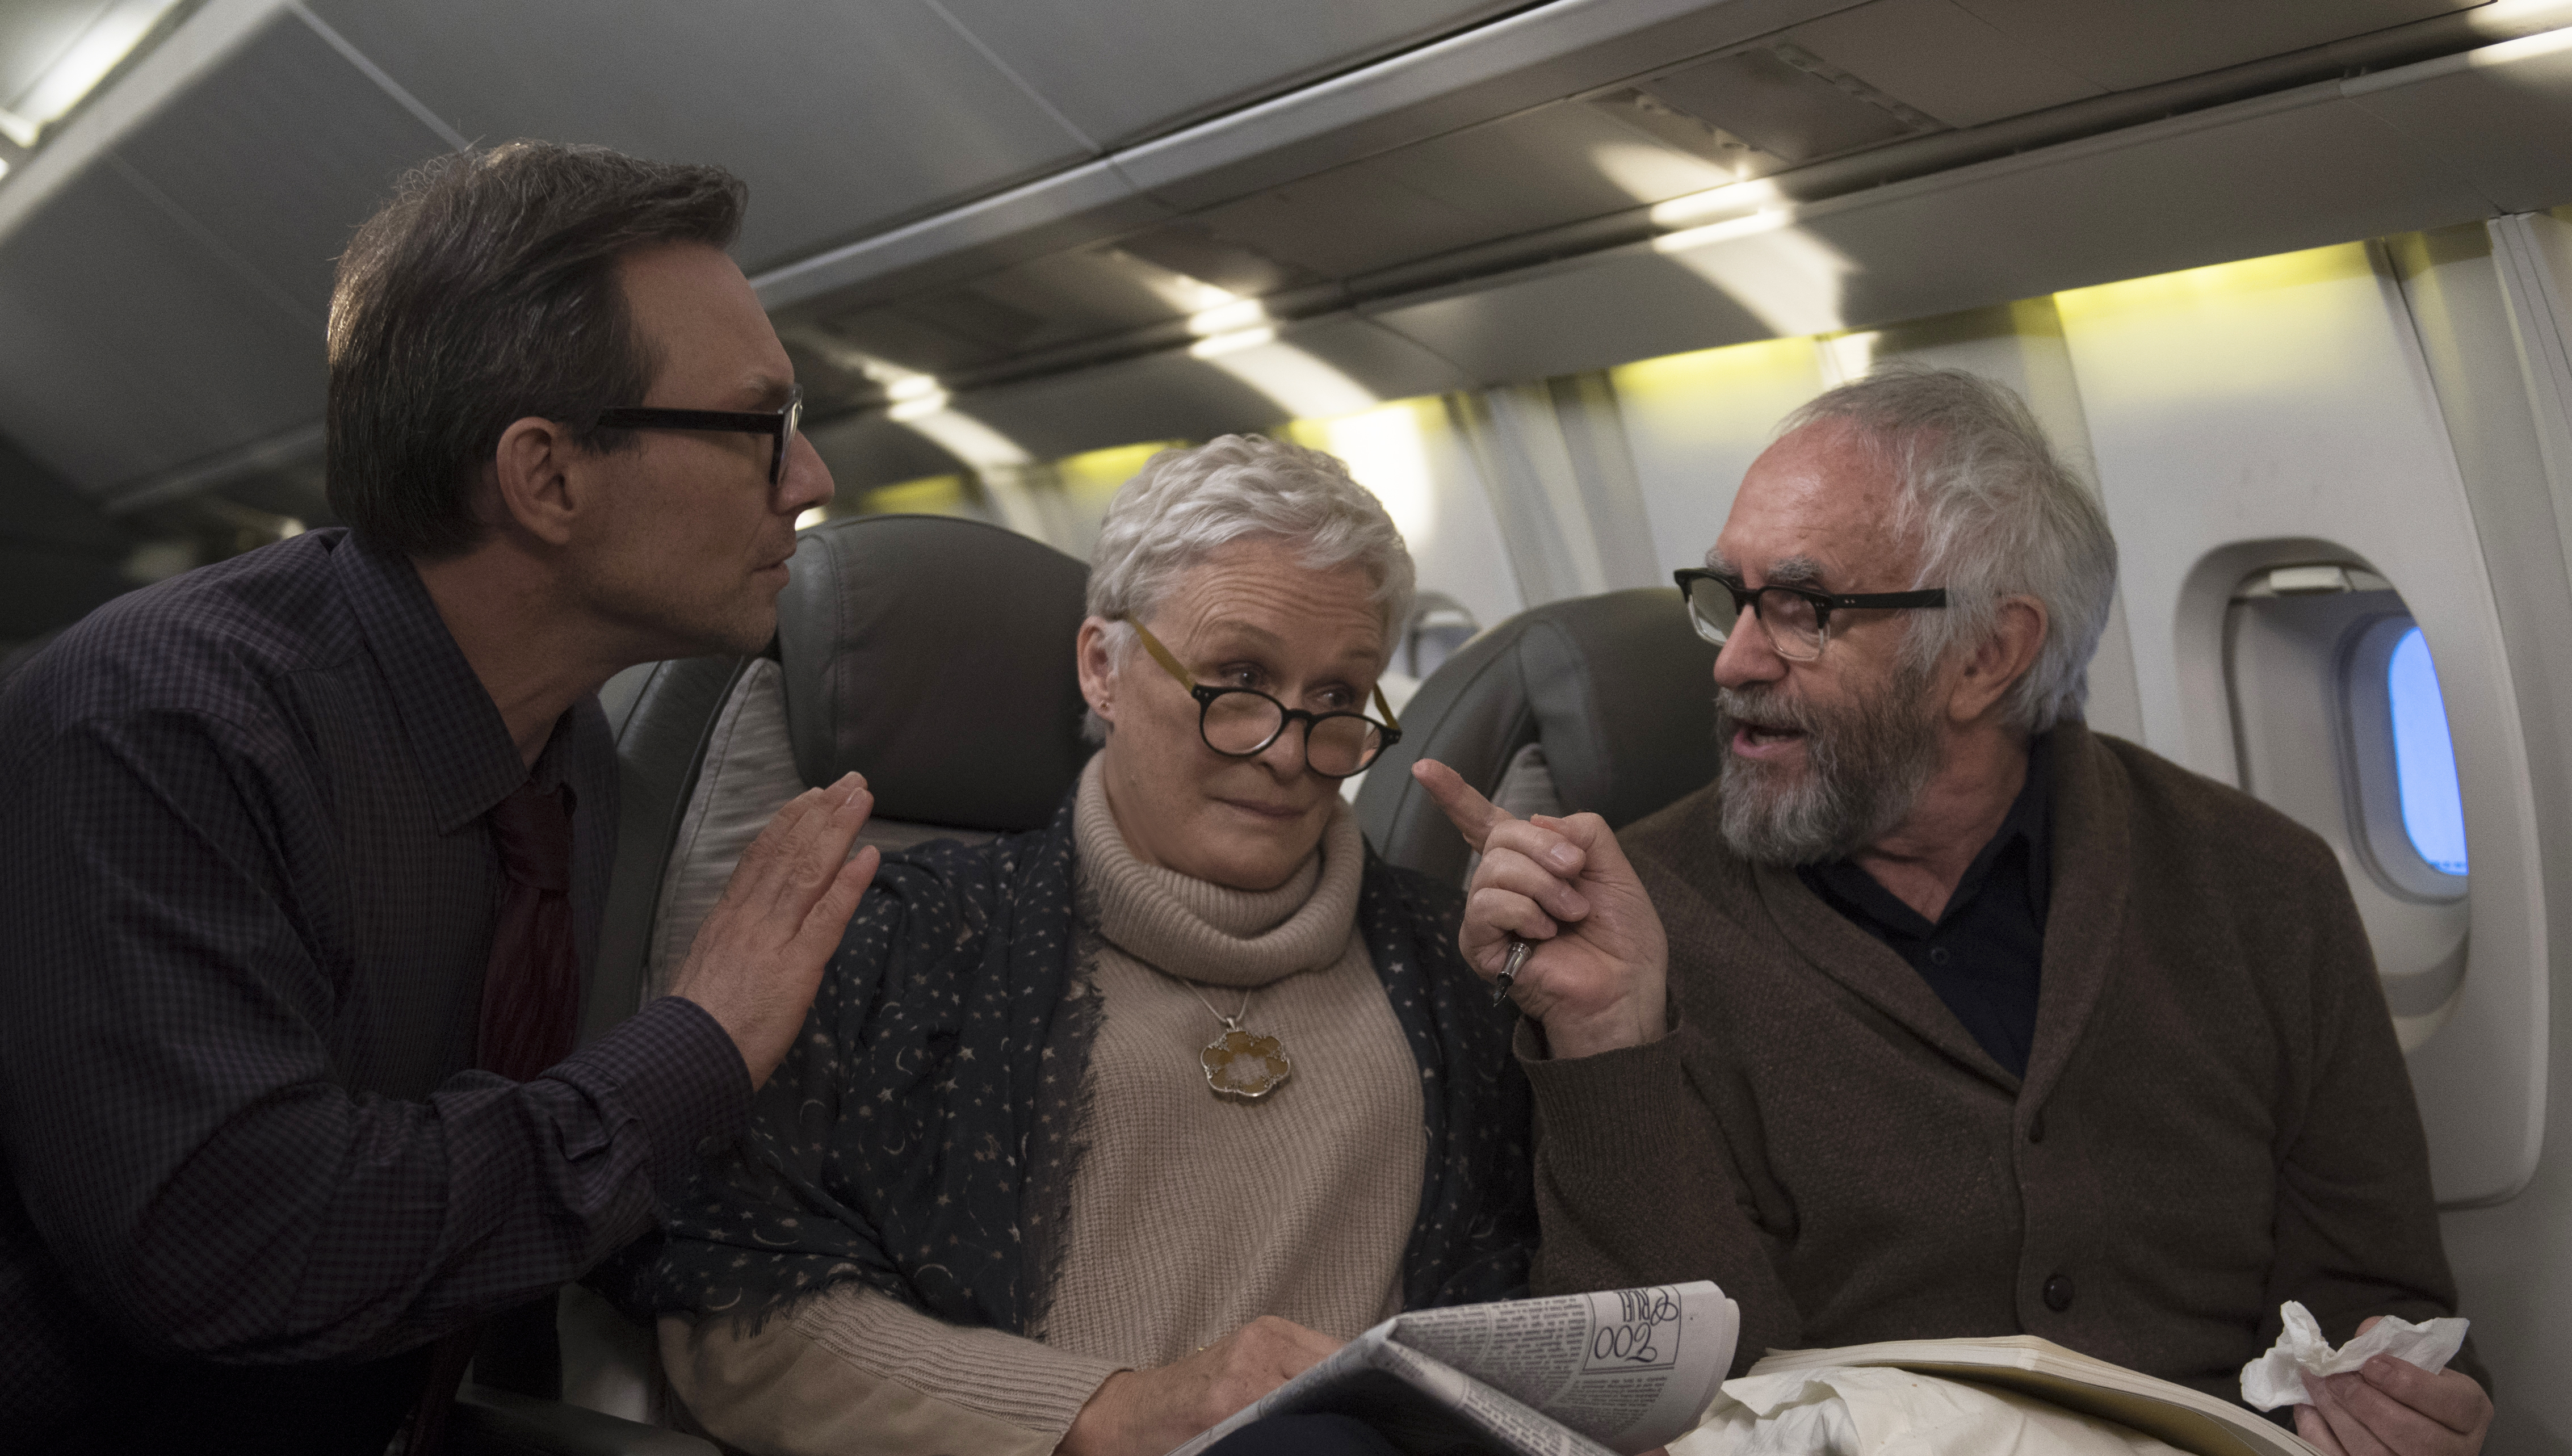 Left to right: Christian Slater as Nathaniel, Glenn Close as Joan and Jonathan Pryce as Joe in The Wife.